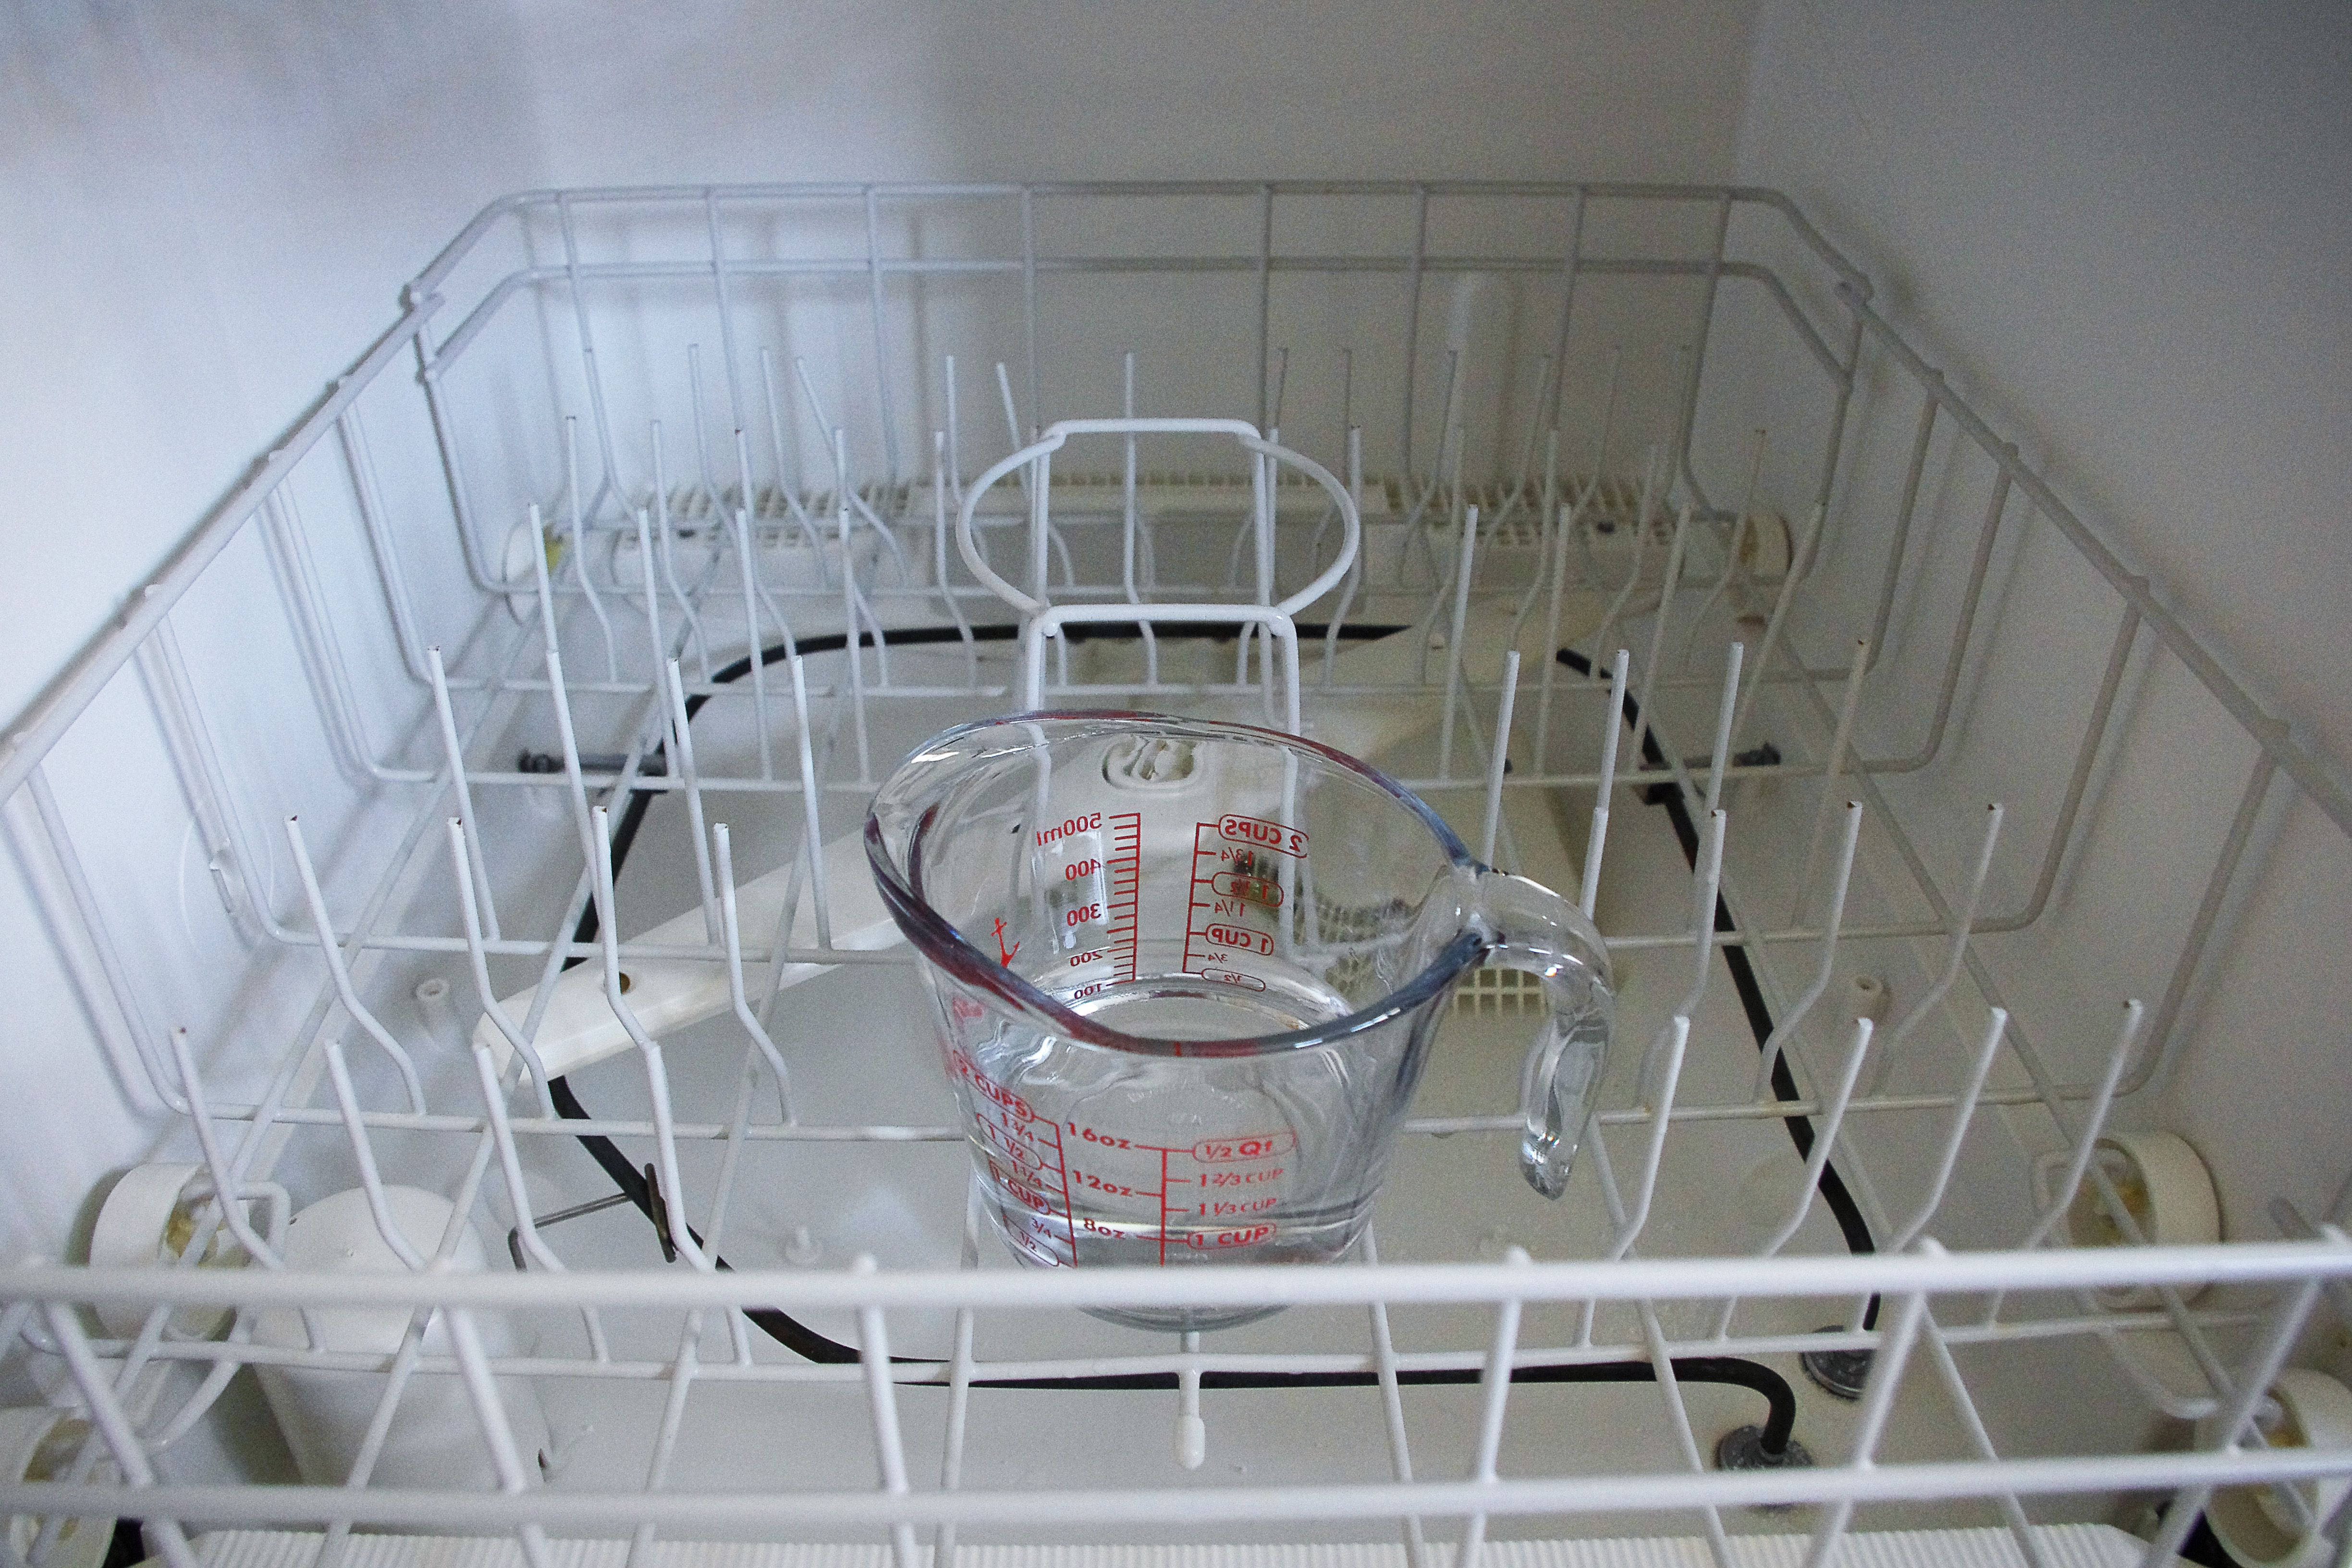 How To Use Clorox Or Bleach In Dishwashers Bleach In Dishwasher